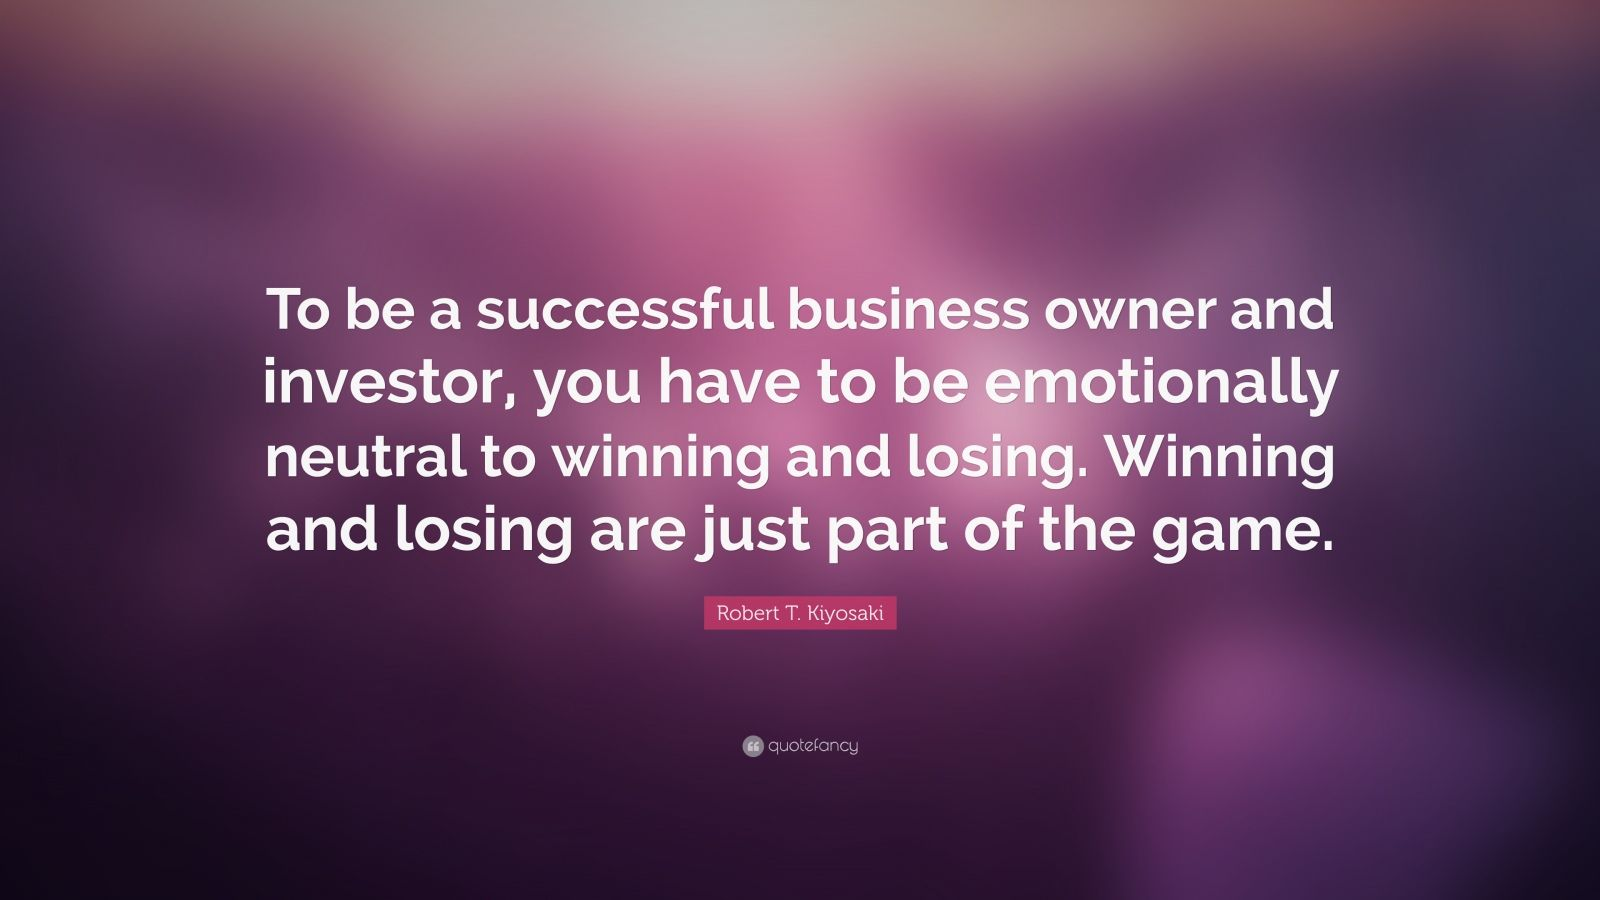 "Robert T. Kiyosaki Quote: ""To be a successful business owner and investor, you have to be emotionally neutral to winning and losing. Winning and losing are just part of the game."""